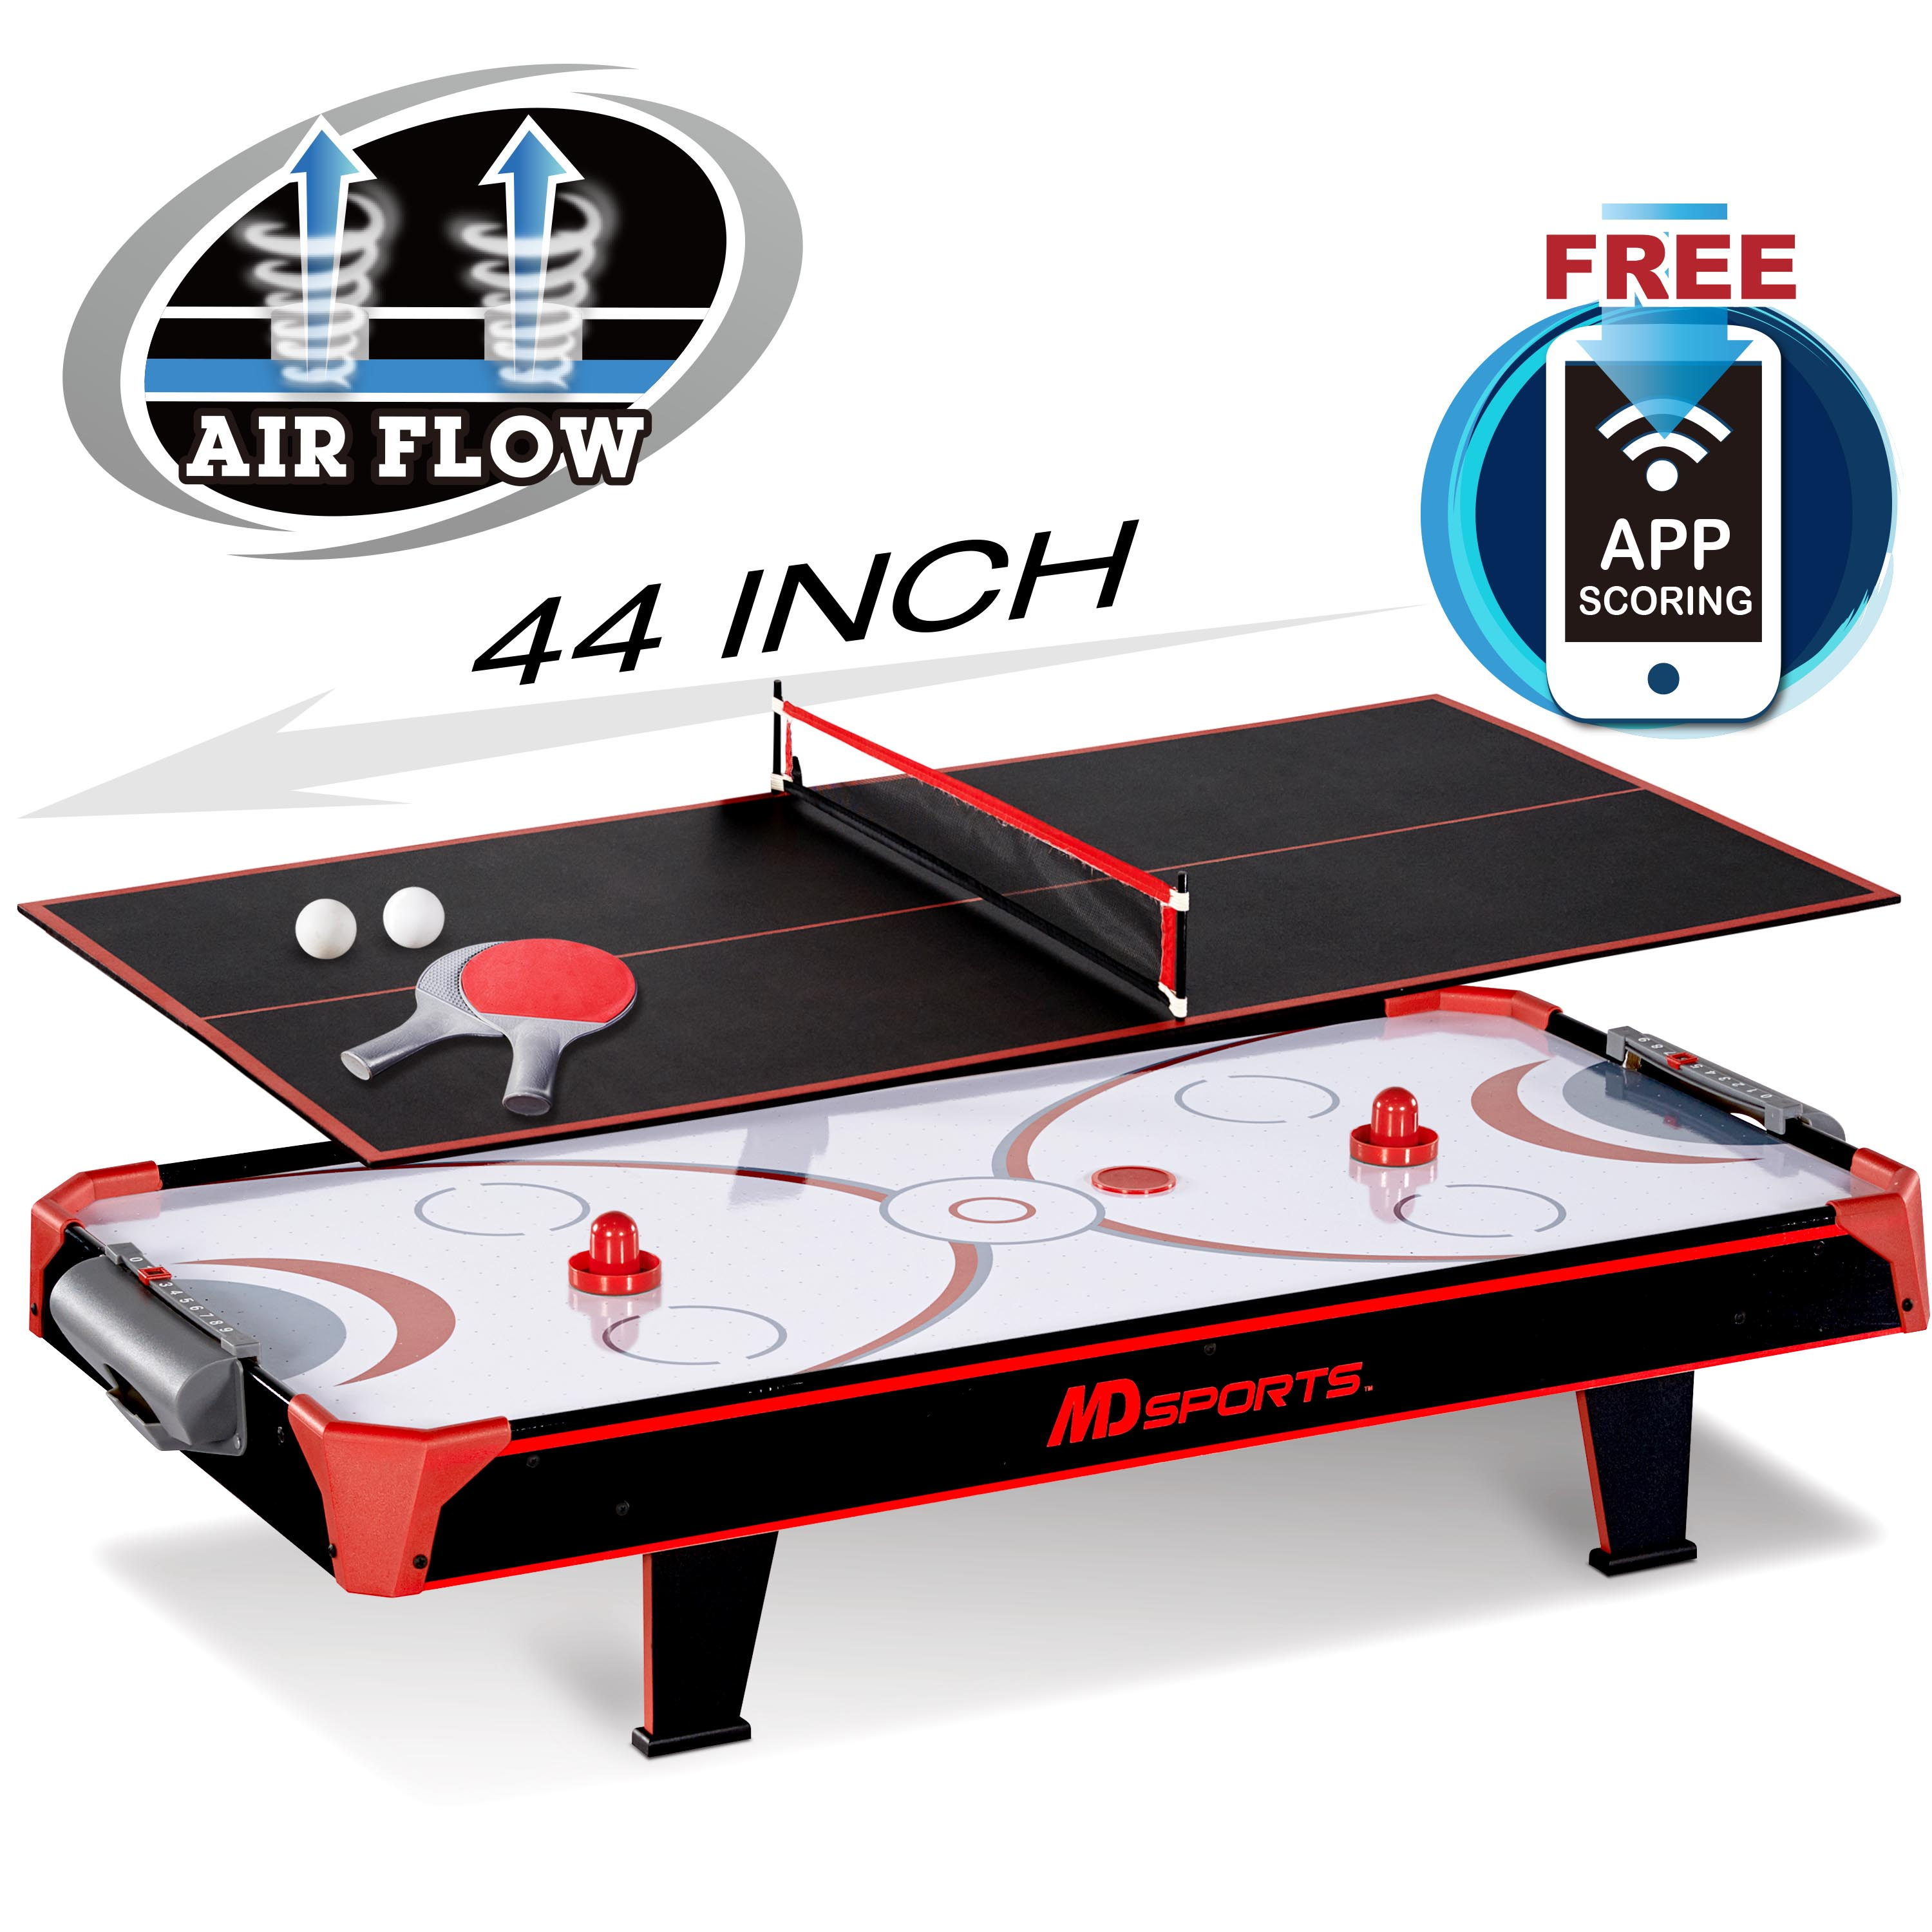 MD Sports 44 Inch Air Powered Hockey Table Top With Table Tennis Top With  APP Scorer